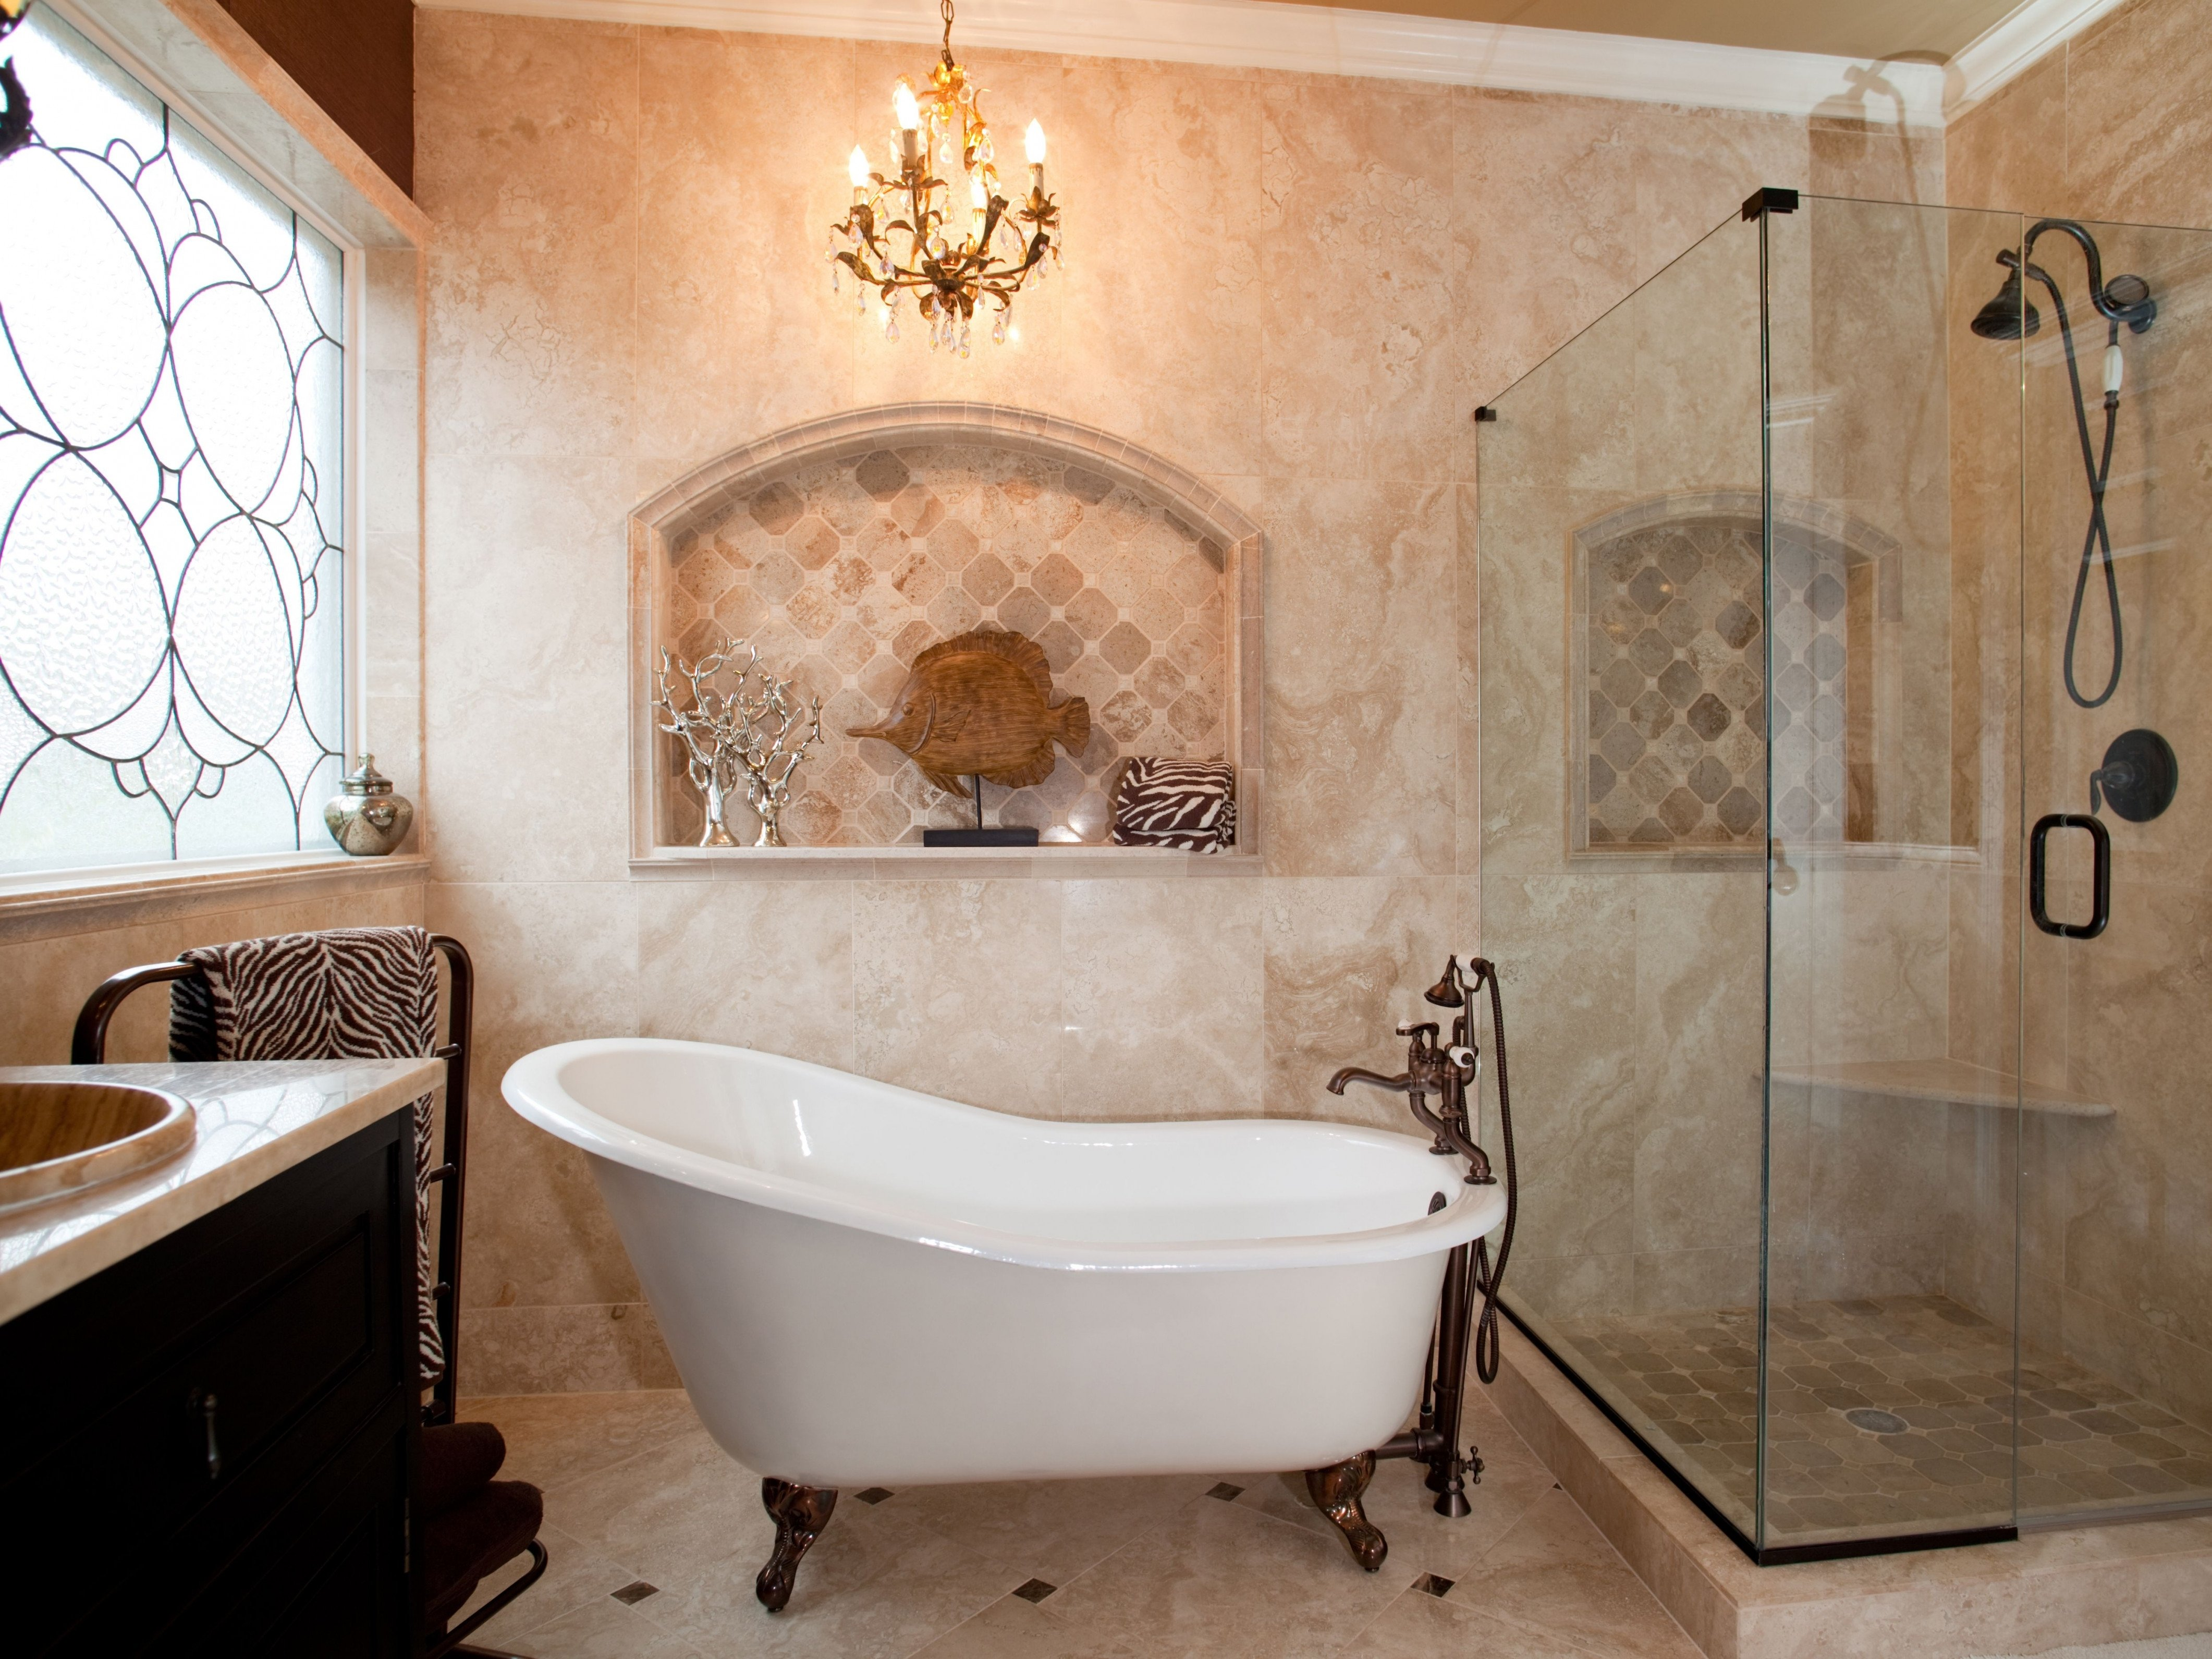 10 Attractive Shower Ideas For Master Bathroom elegant master bathroom shower design ideas 79 in home office home 2021